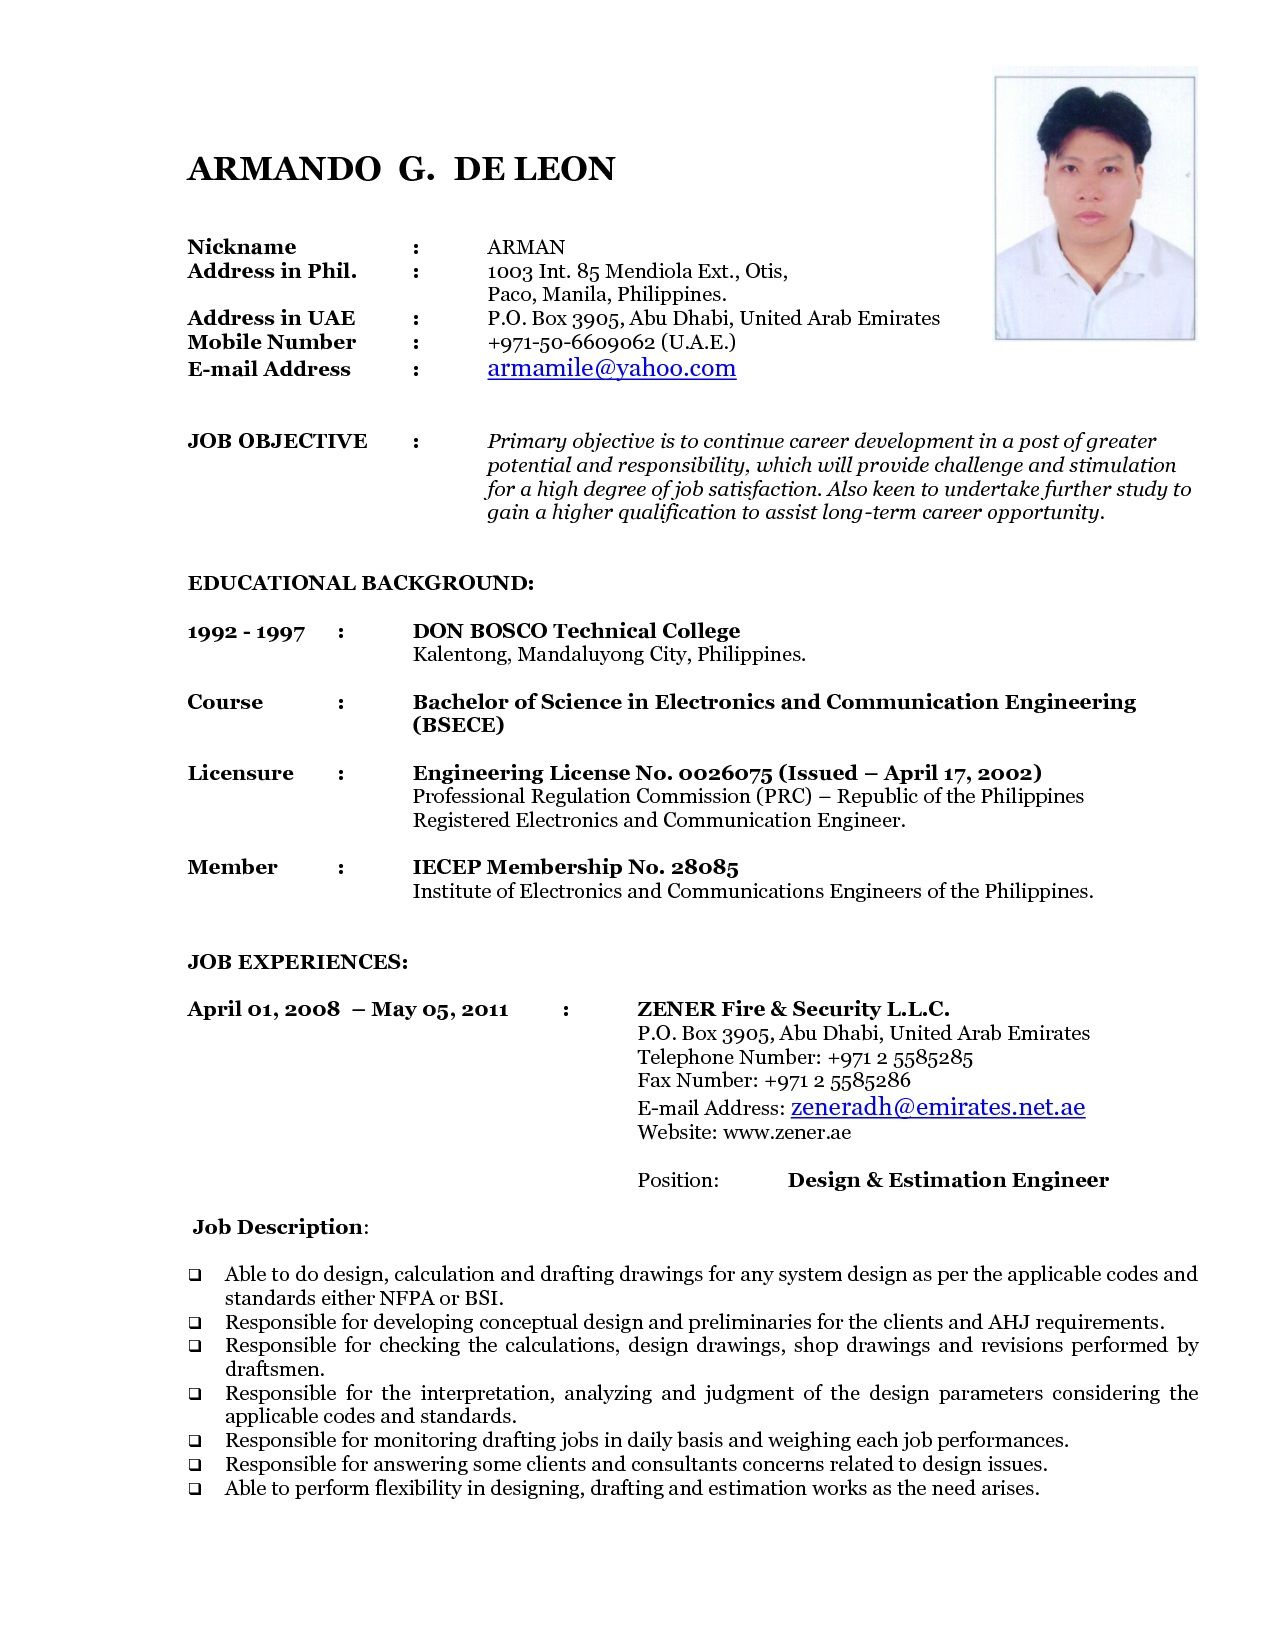 Generous Resume Sample For Job Philippines Gallery Resume Ideas